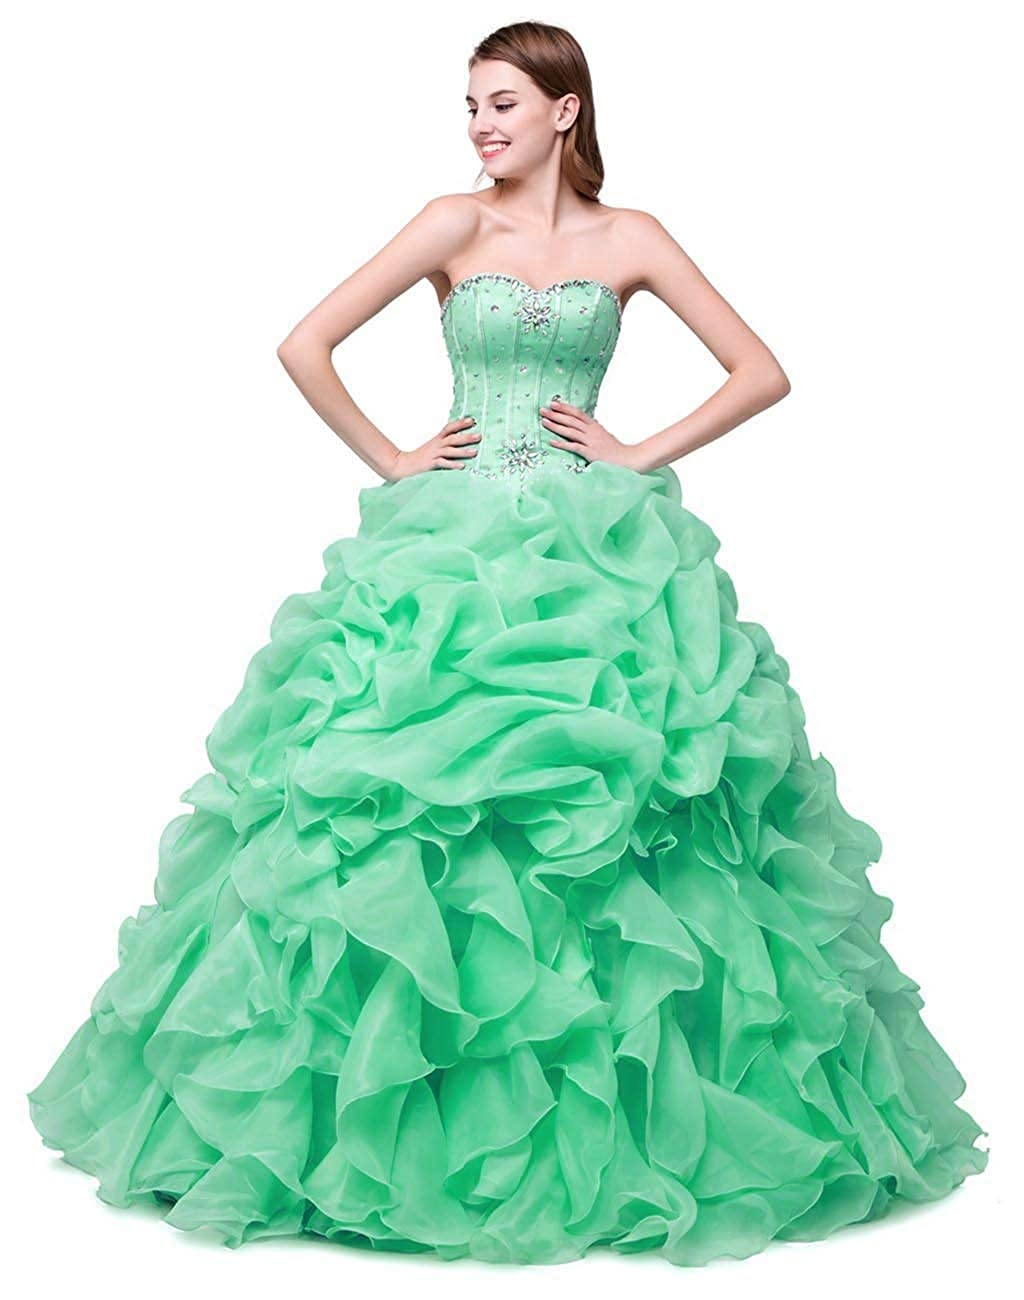 Mint Vantexi Women's Pleated Organza Formal Prom Dress Party Ball Gowns